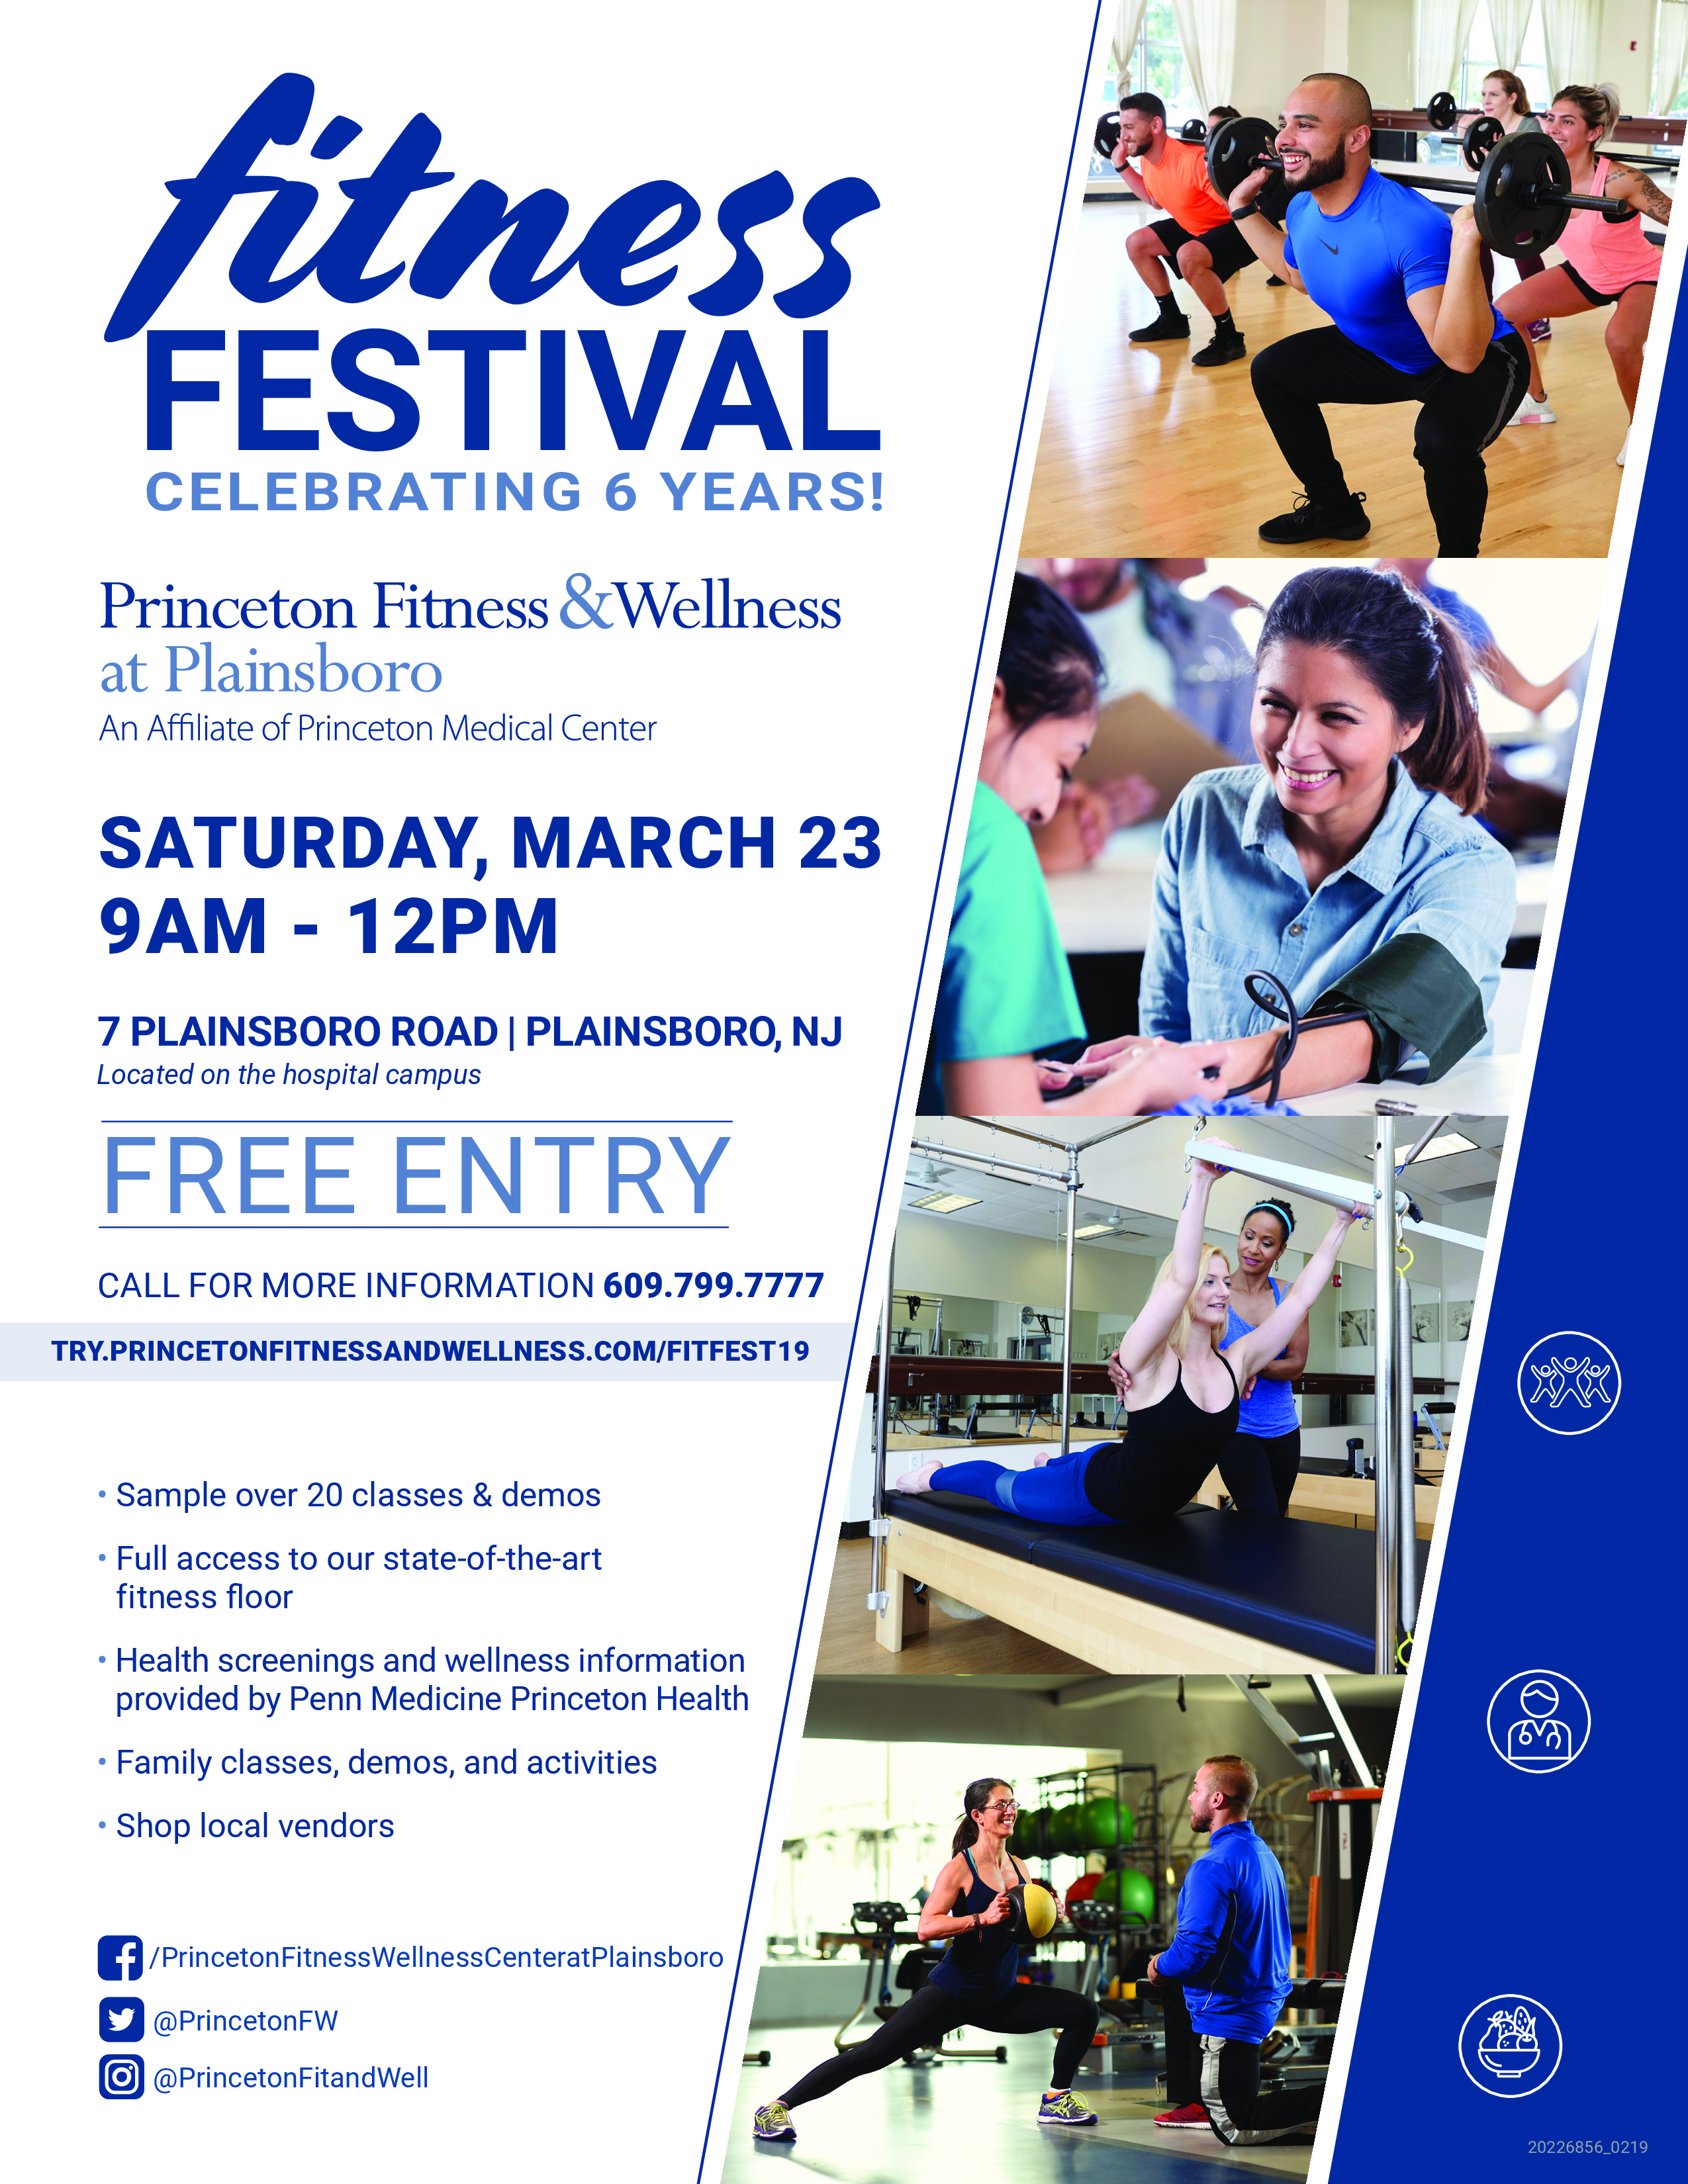 Fitness Festival at Princeton Fitness & Wellness at Plainsboro